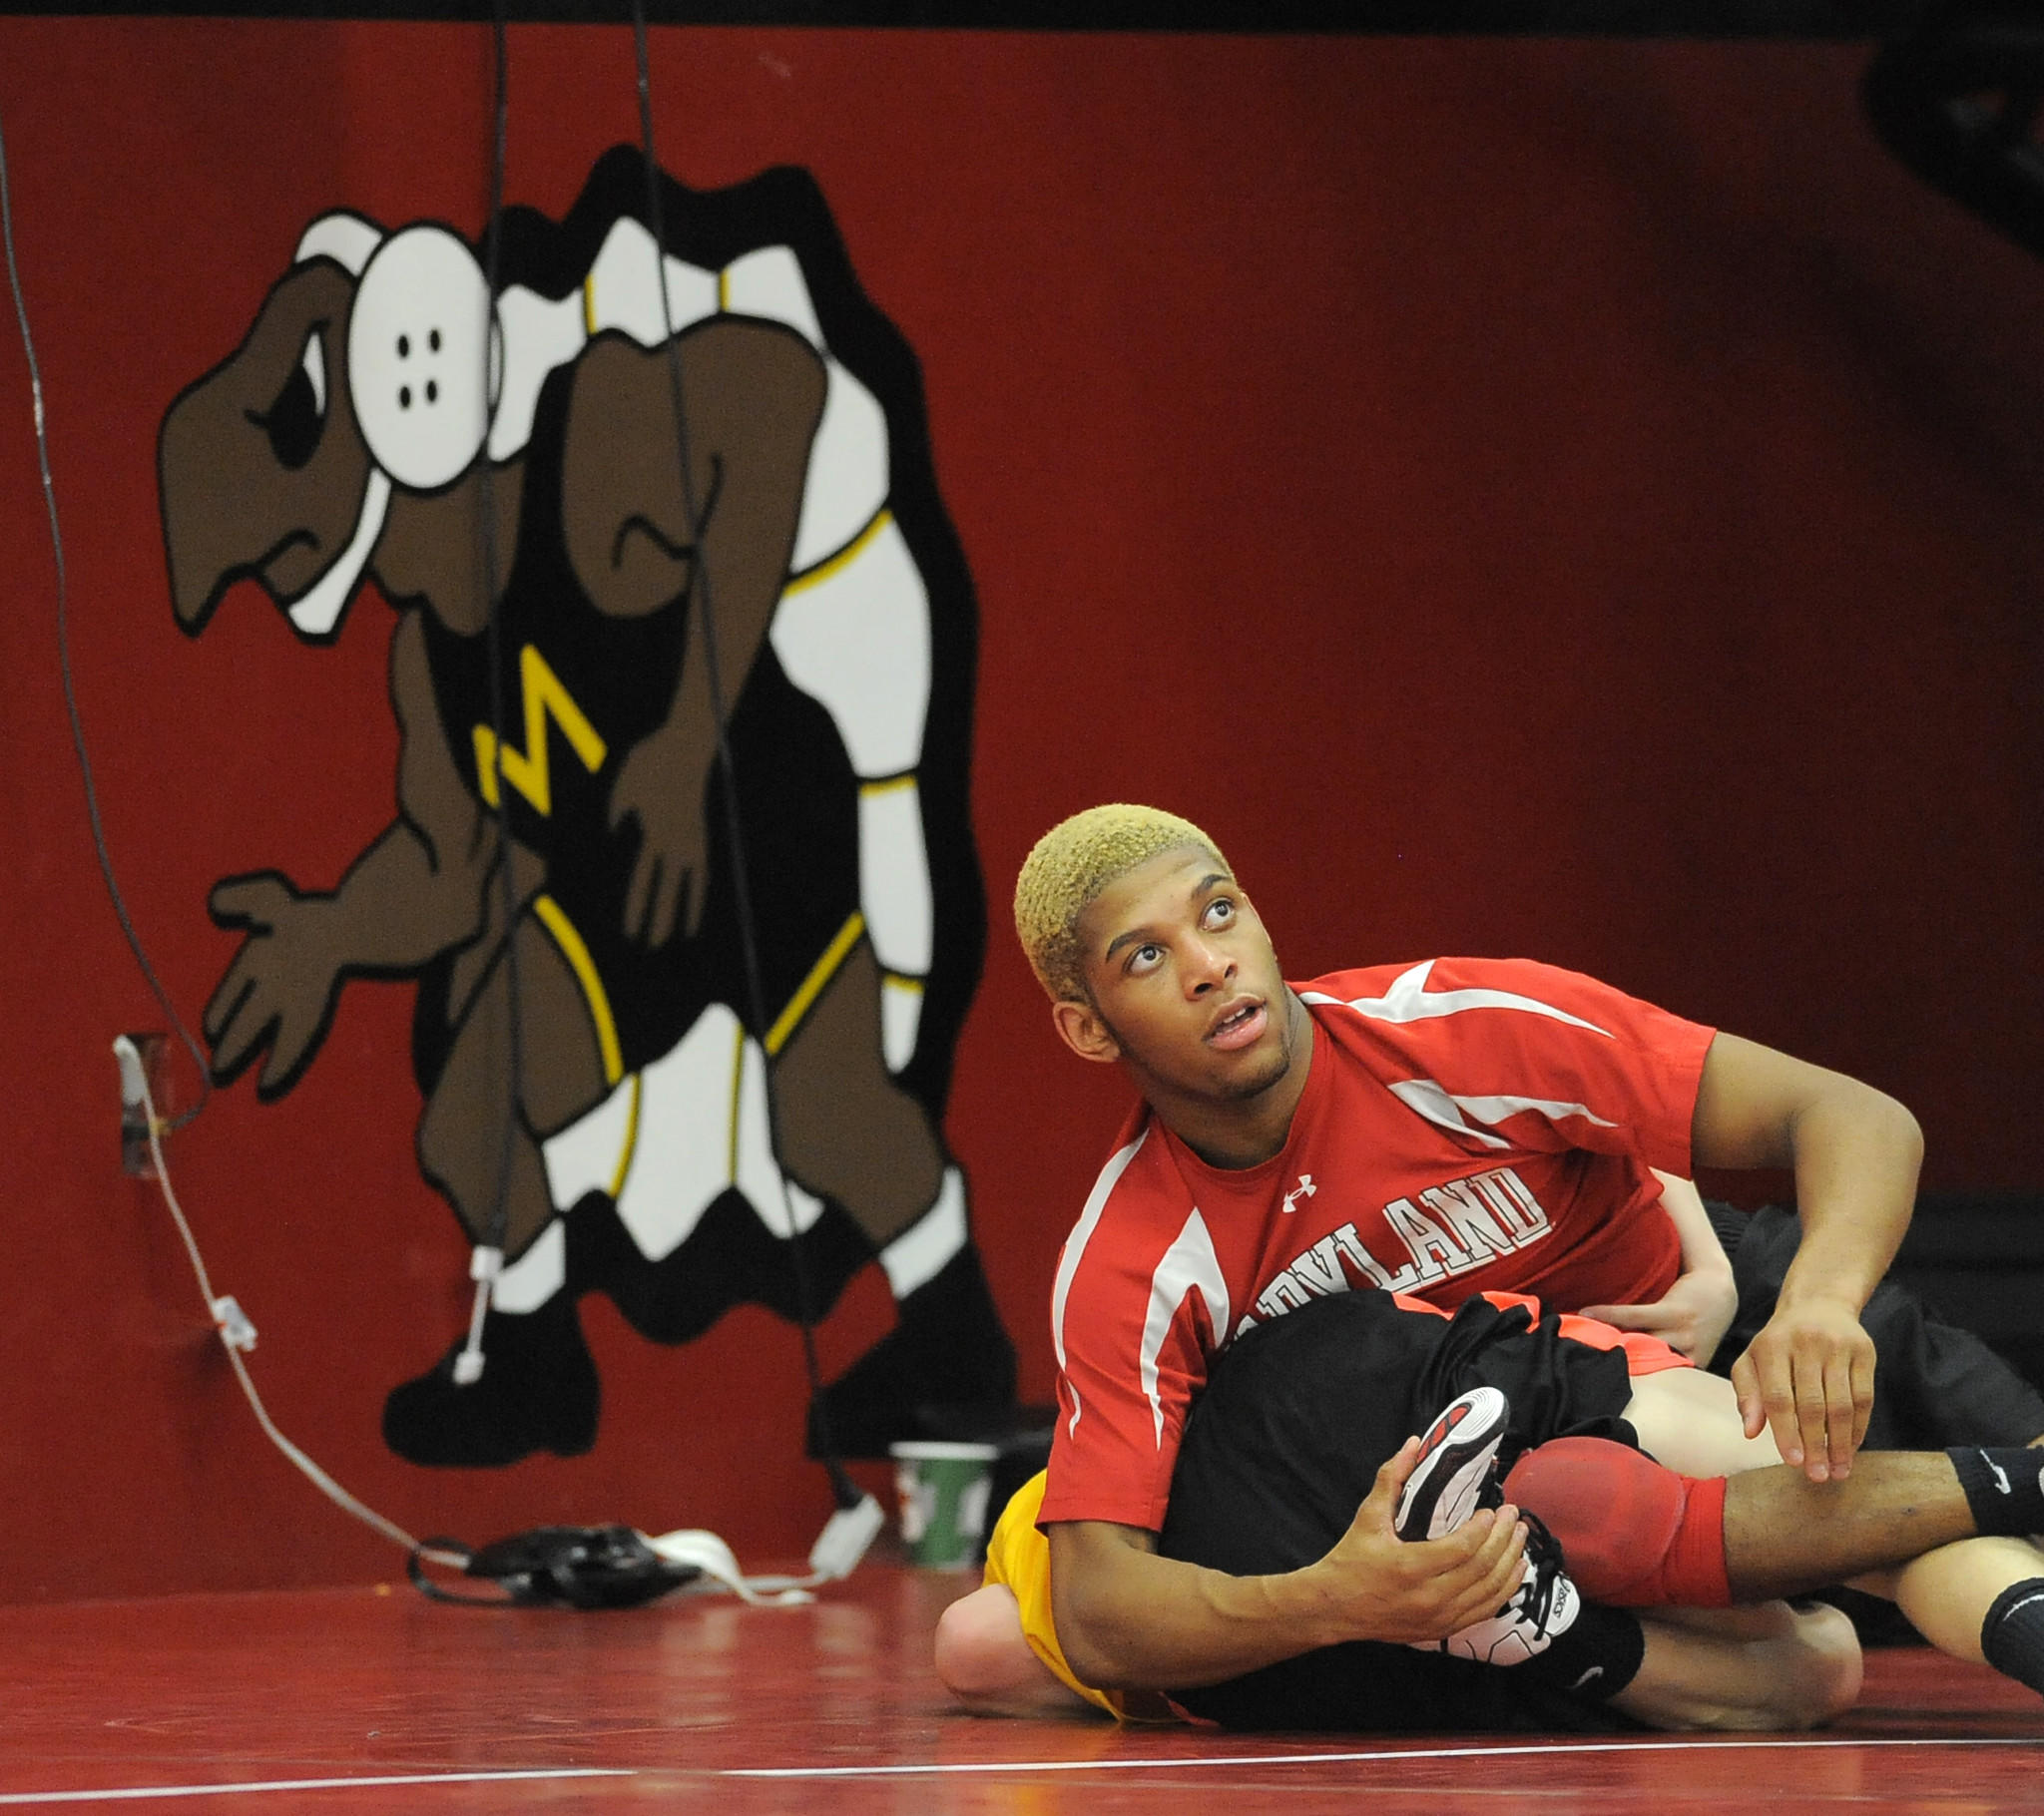 Shyheim Brown and the Maryland wrestling team are looking forward to a greater challenge when they enter the Big Ten, which has been dominant nationally.